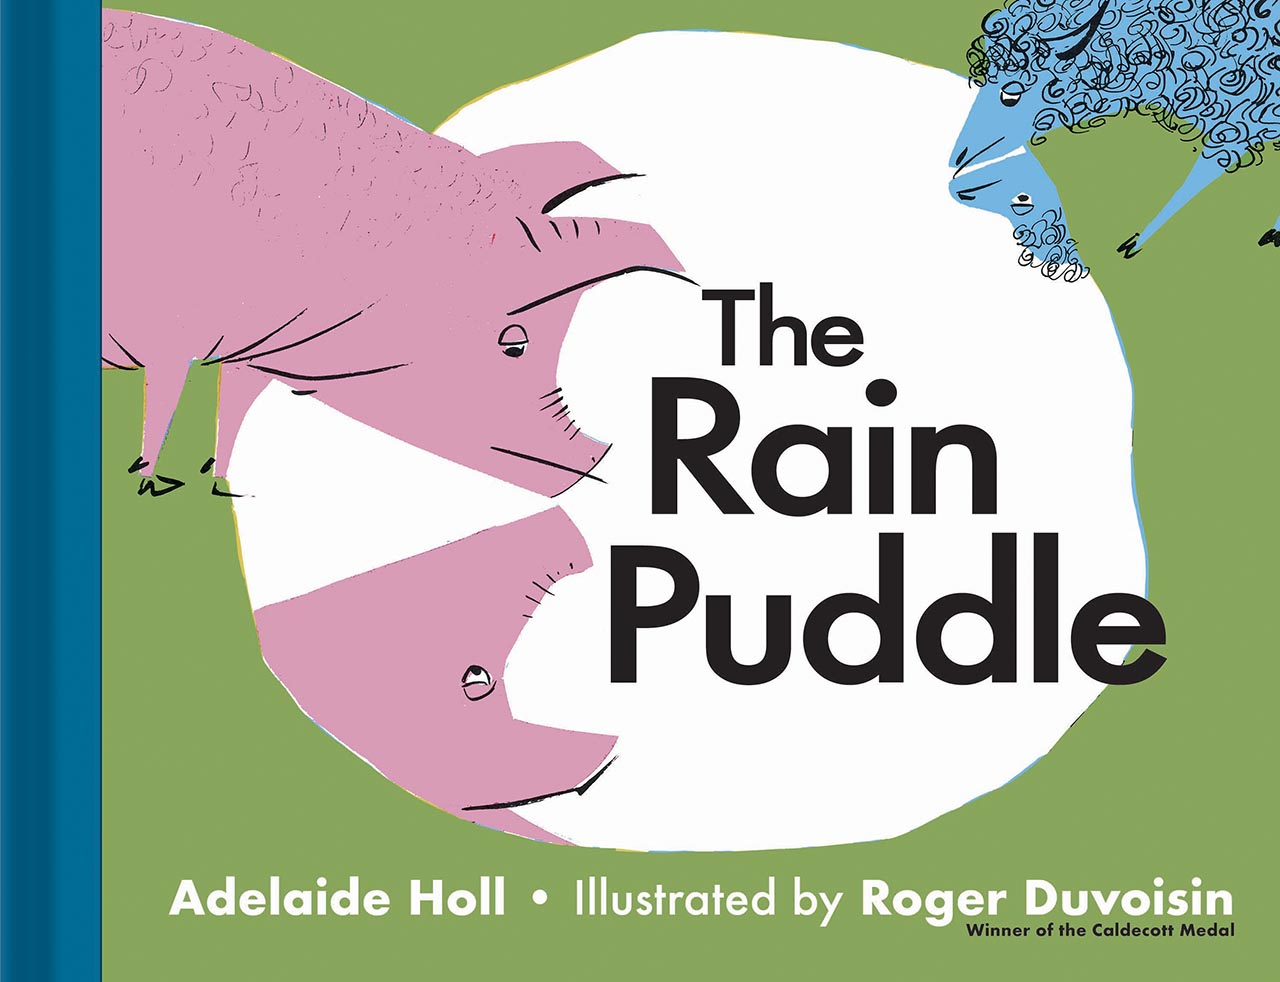 The Rain Puddle